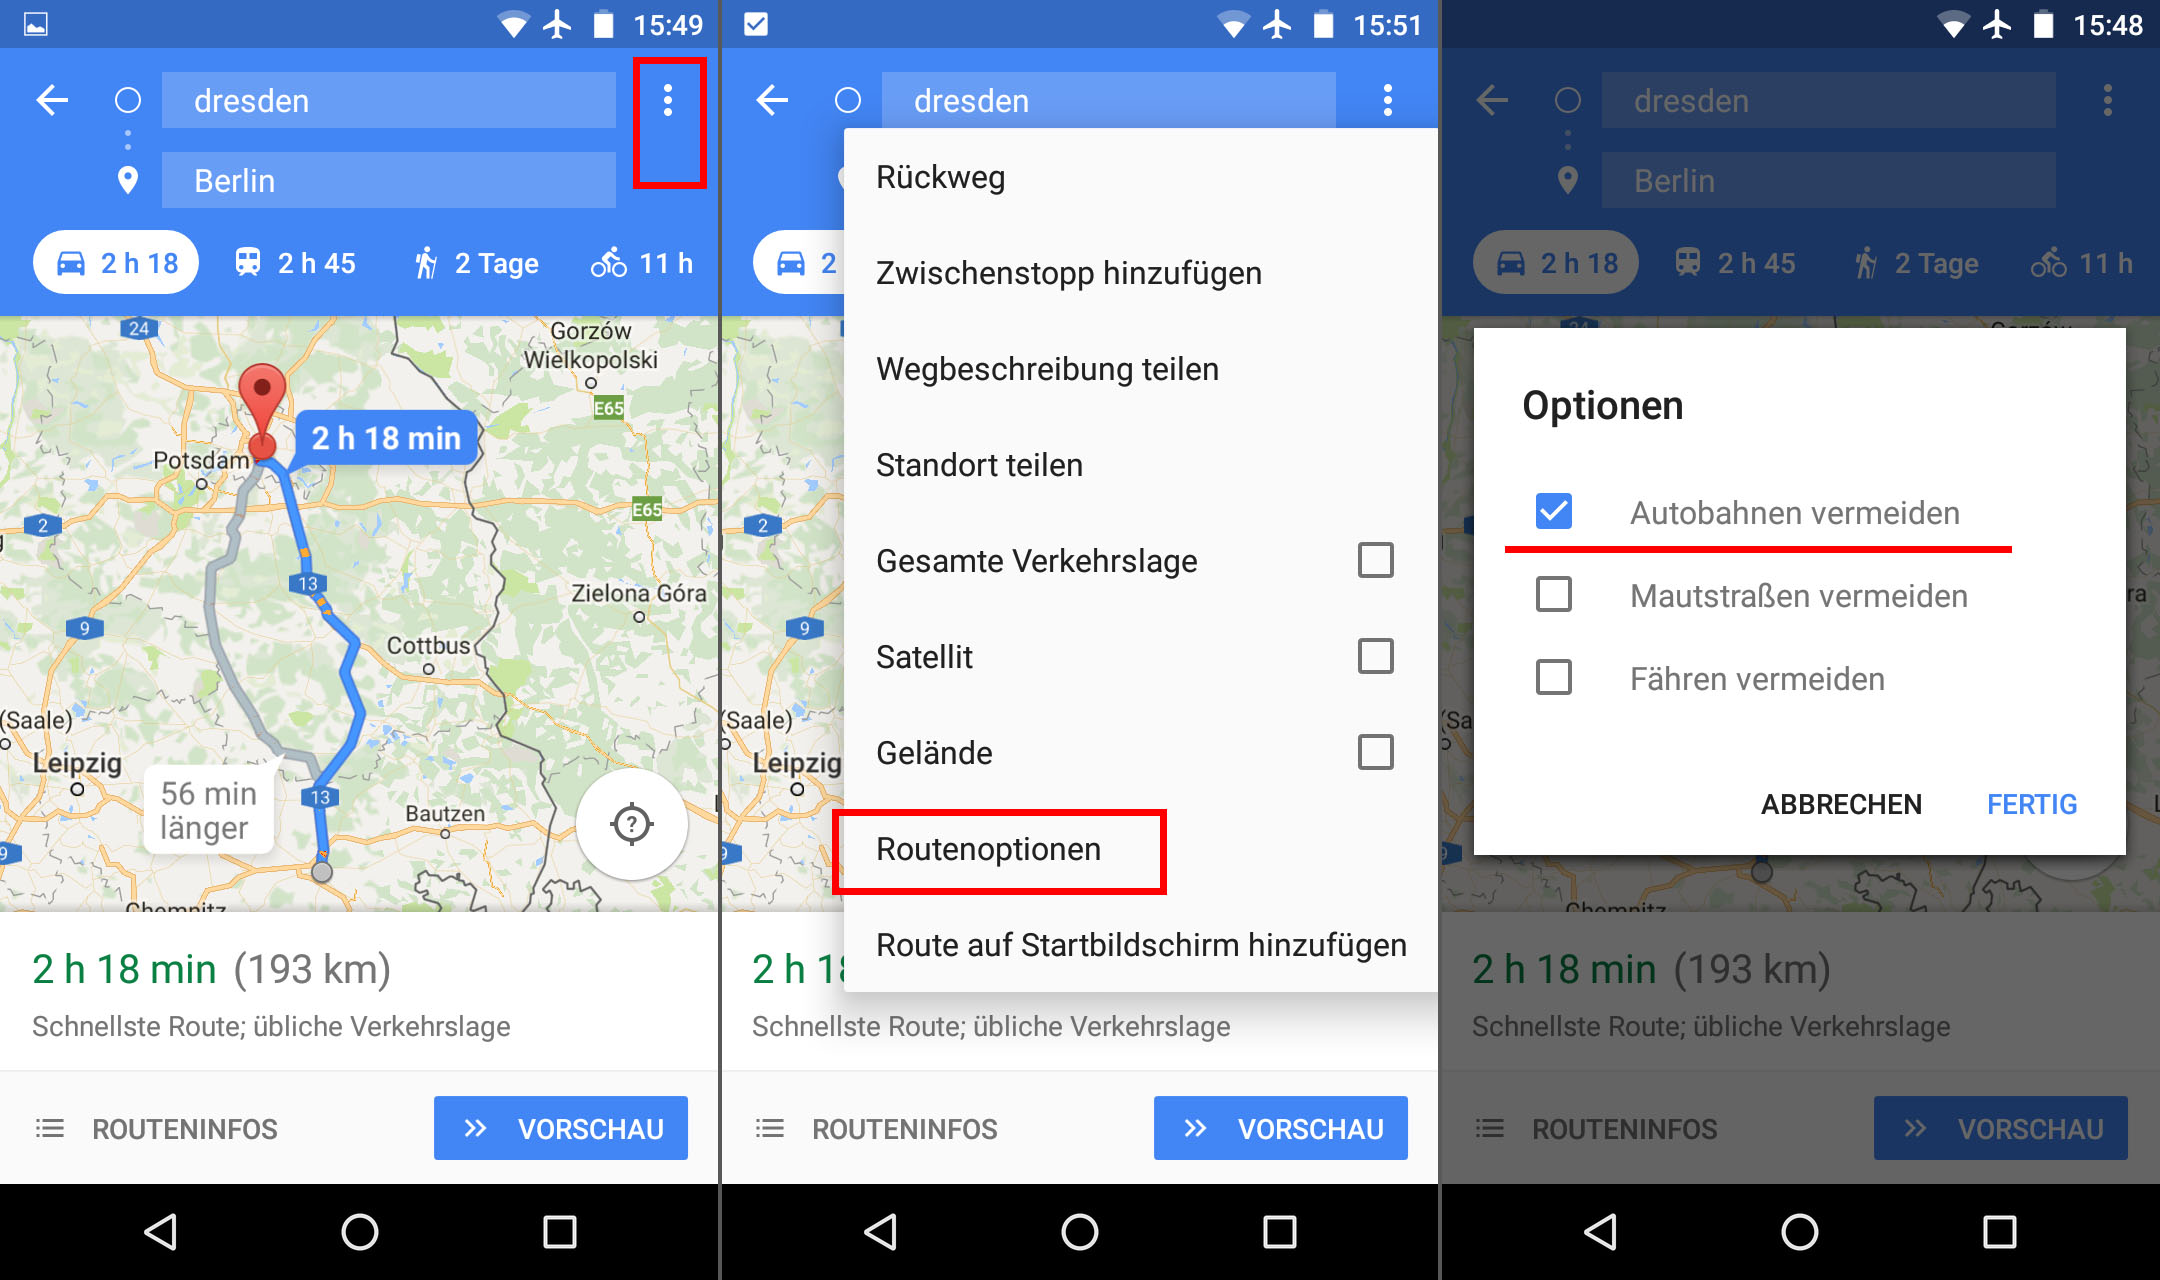 google maps autobahn vermeiden so geht s giga. Black Bedroom Furniture Sets. Home Design Ideas